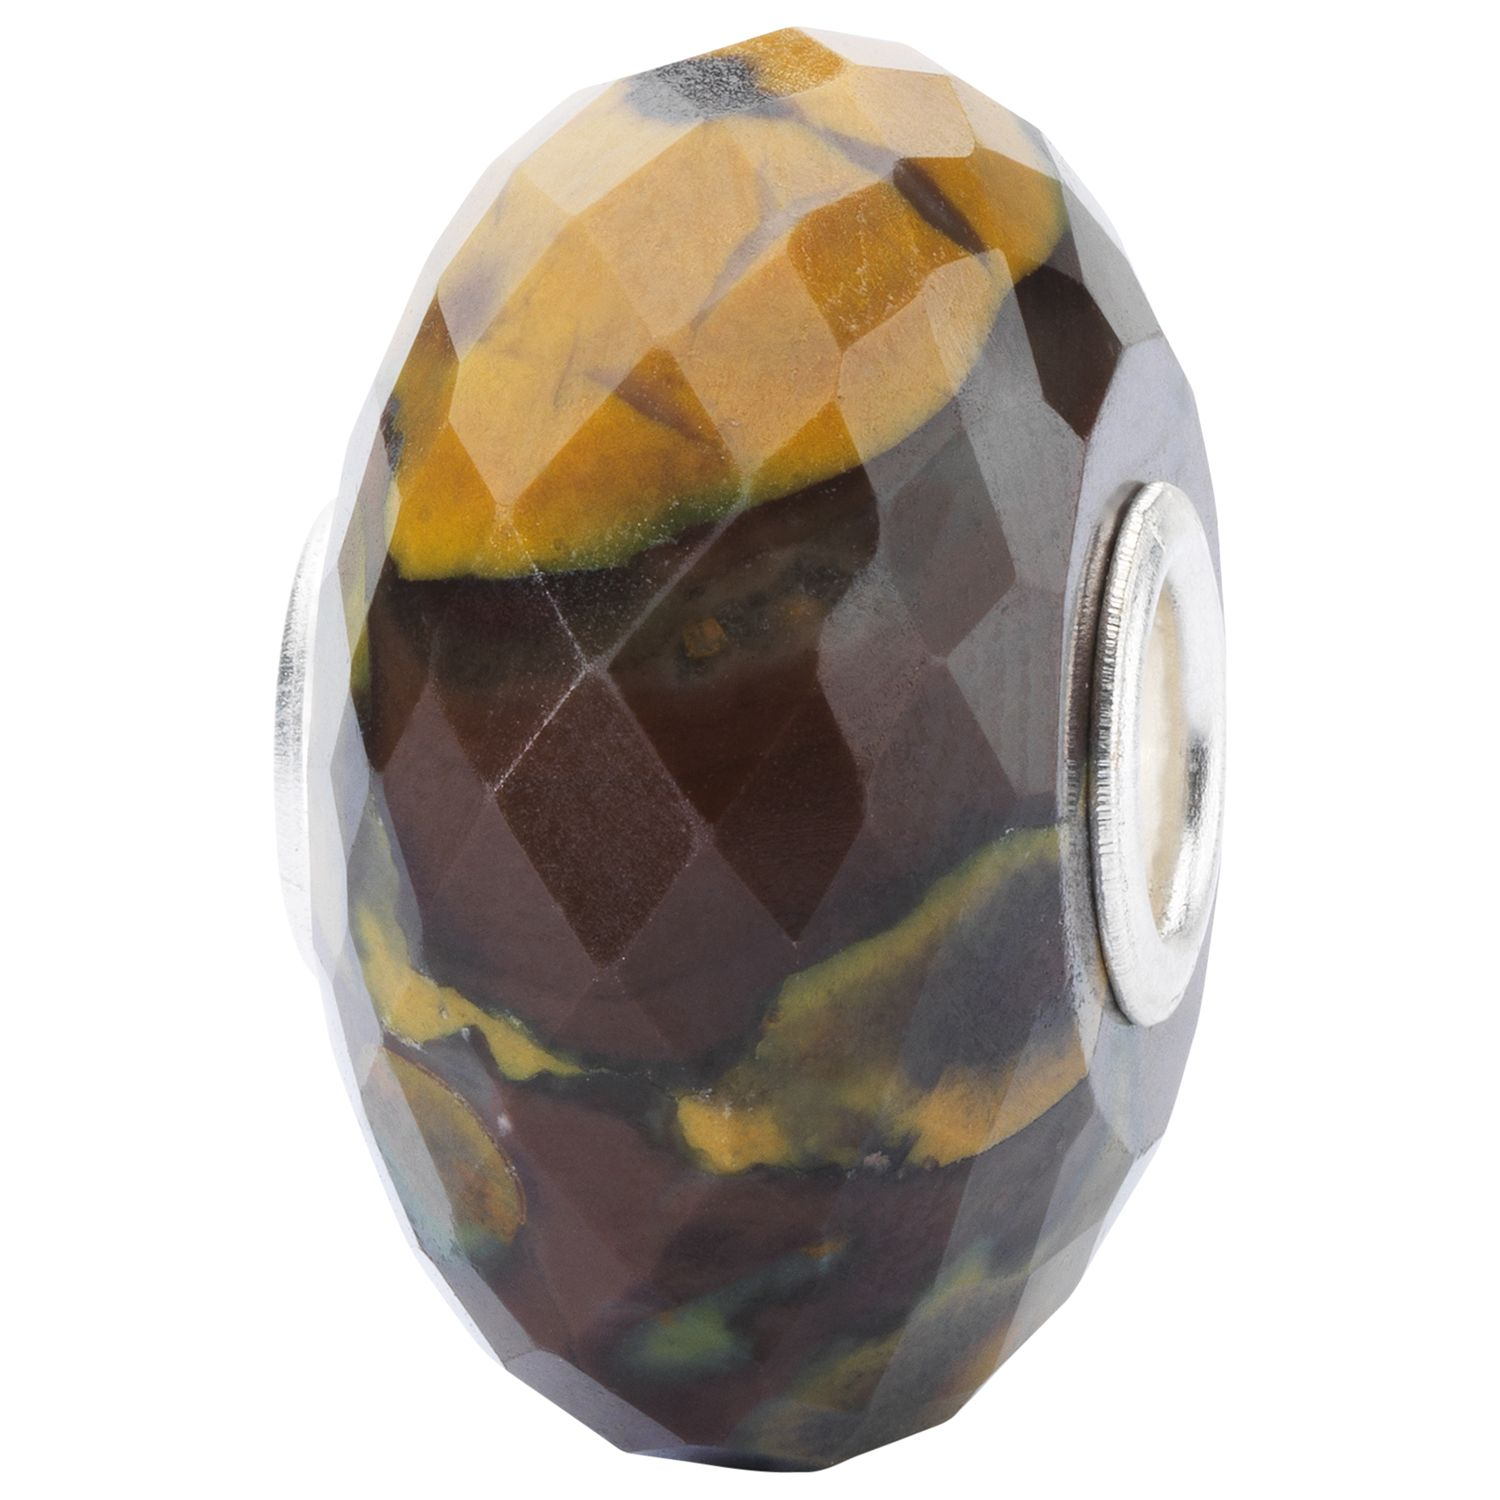 Trollbeads Trollbeads Sterling Silver Calcite Rock Bead Charm, Brown